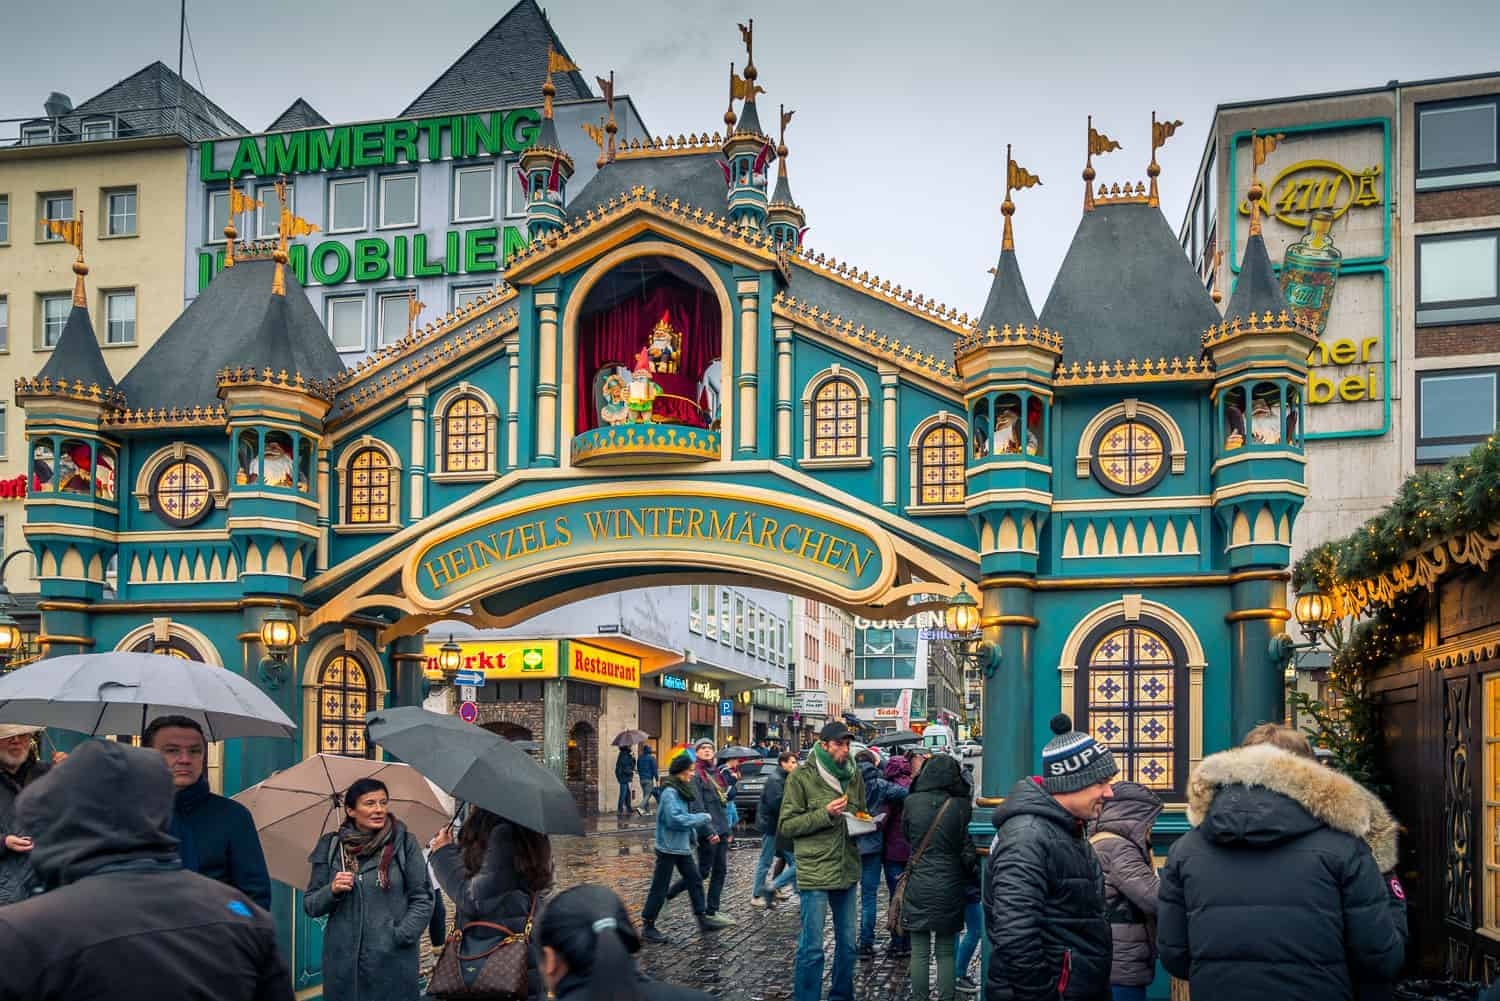 Best Christmas Markets In Europe 2020 Best Christmas Markets In Europe 2020